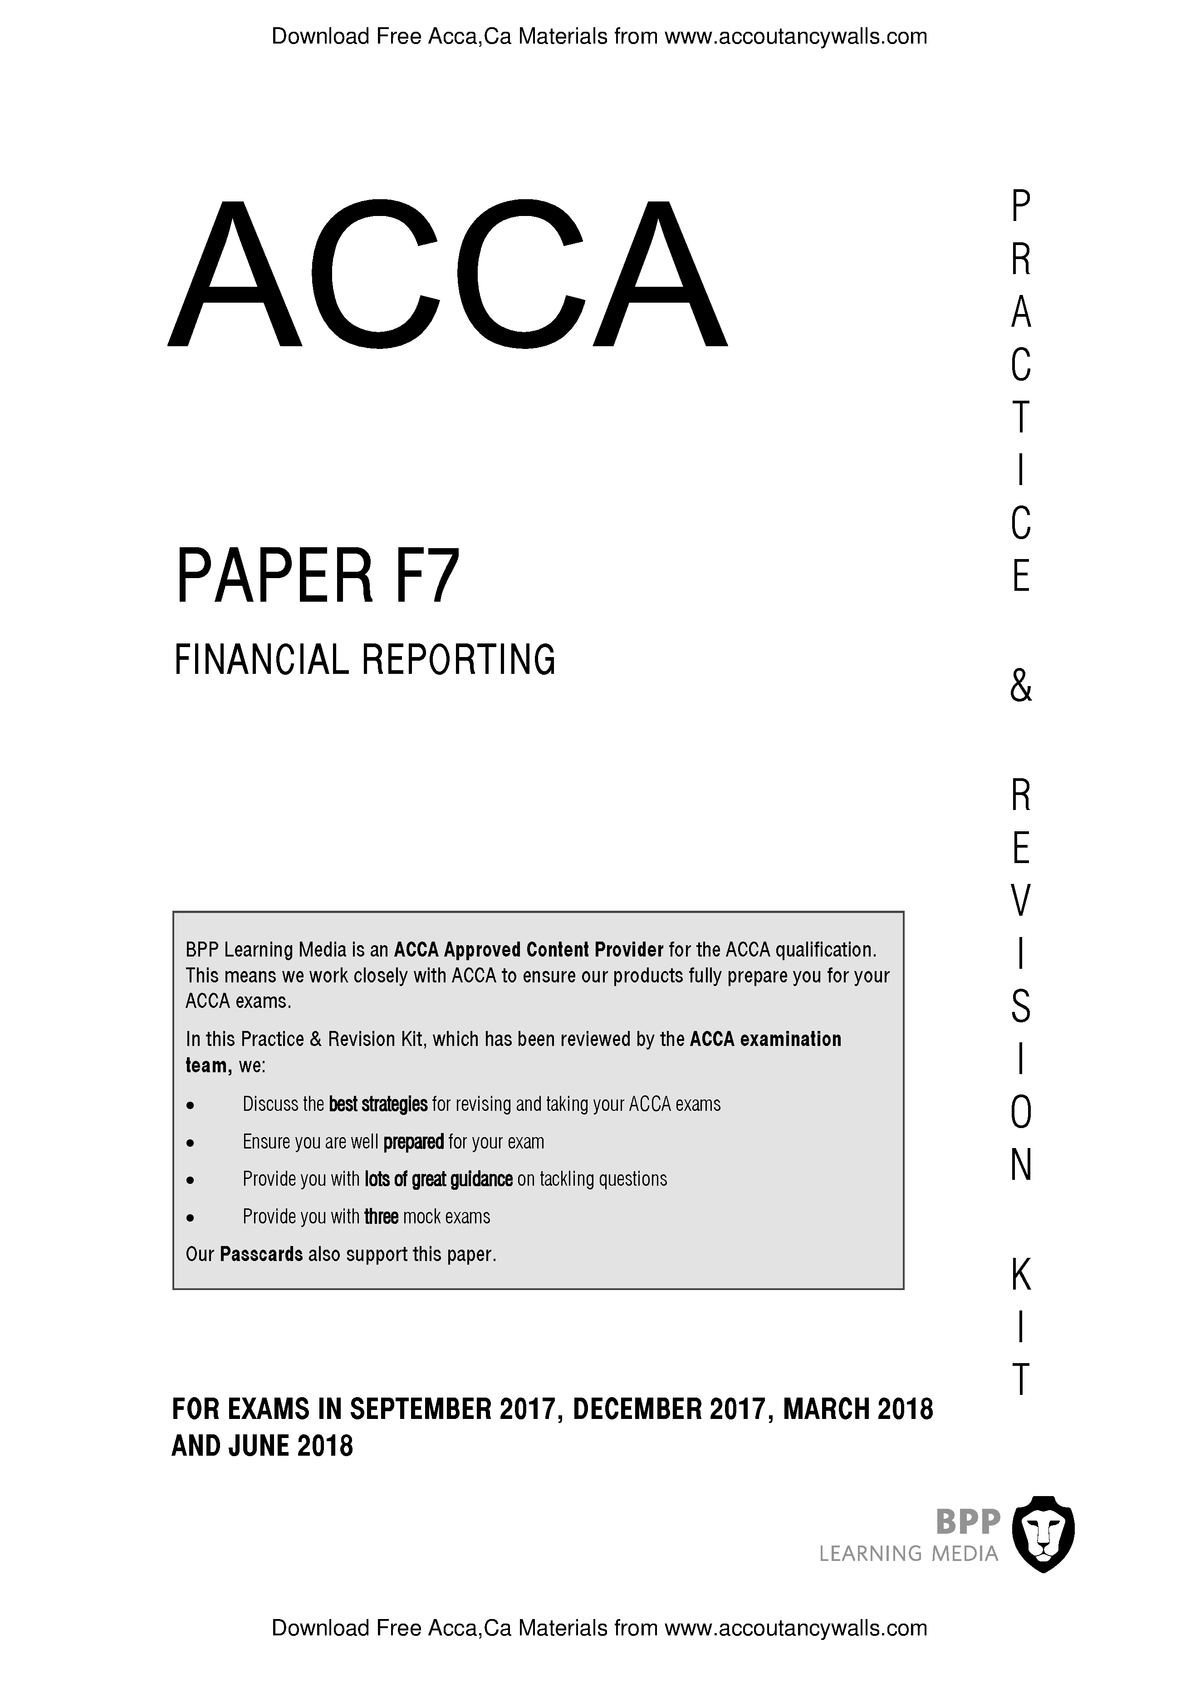 ACCA F7 - Financial Reporting Revision Kit 2017 - gem 302: Strategic